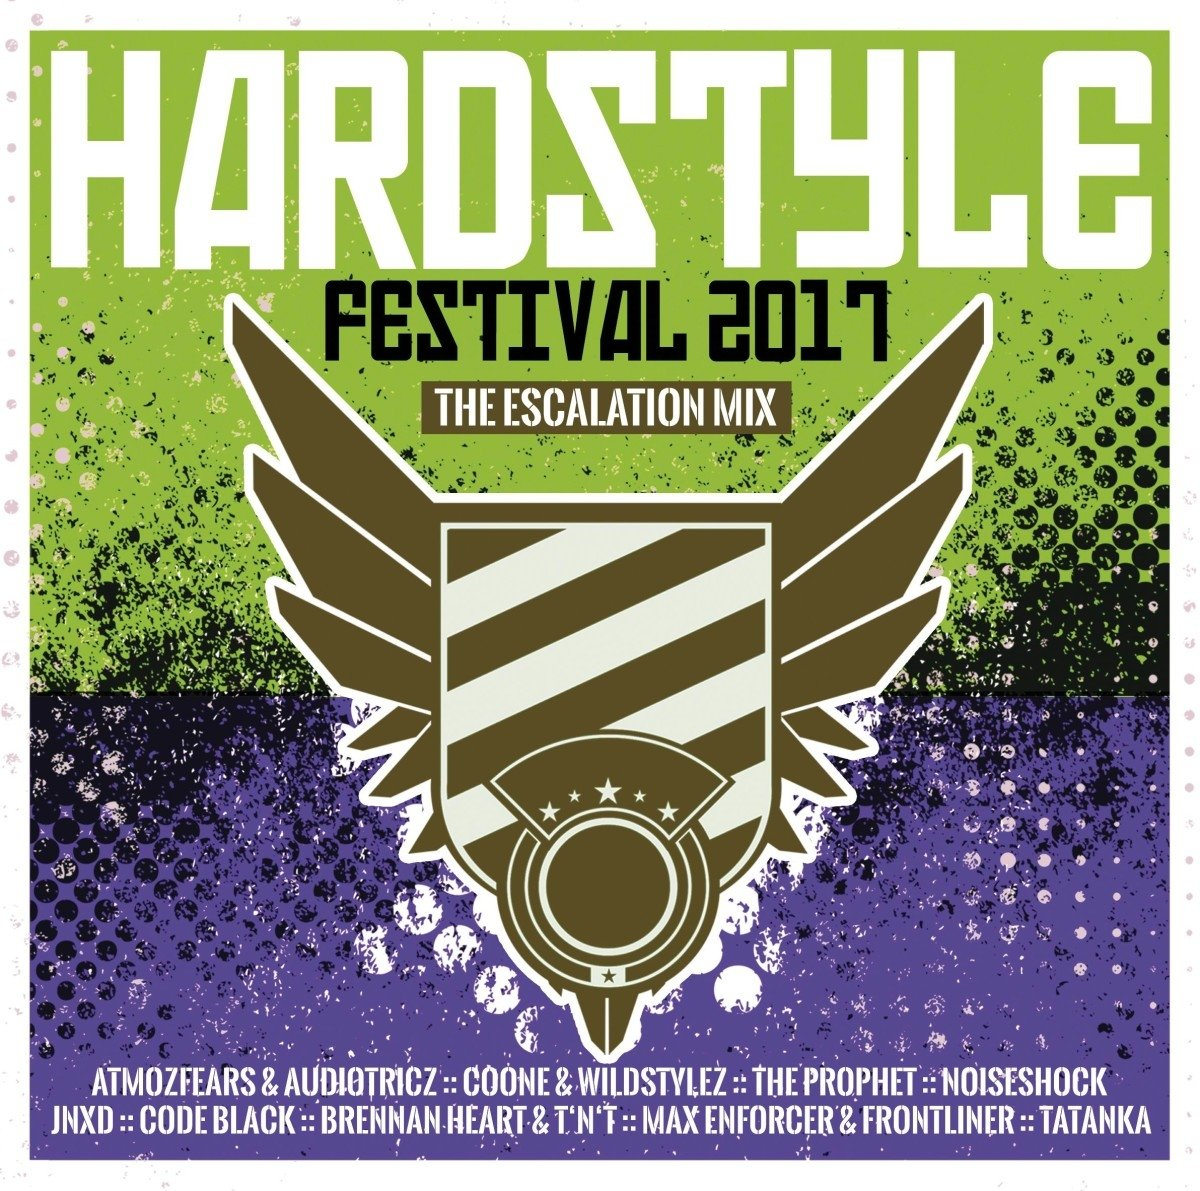 VA - Hardstyle Festival 2017 - The Escalation Mix - (264.0087.2) - 2CD - FLAC - 2017 - WRE Download